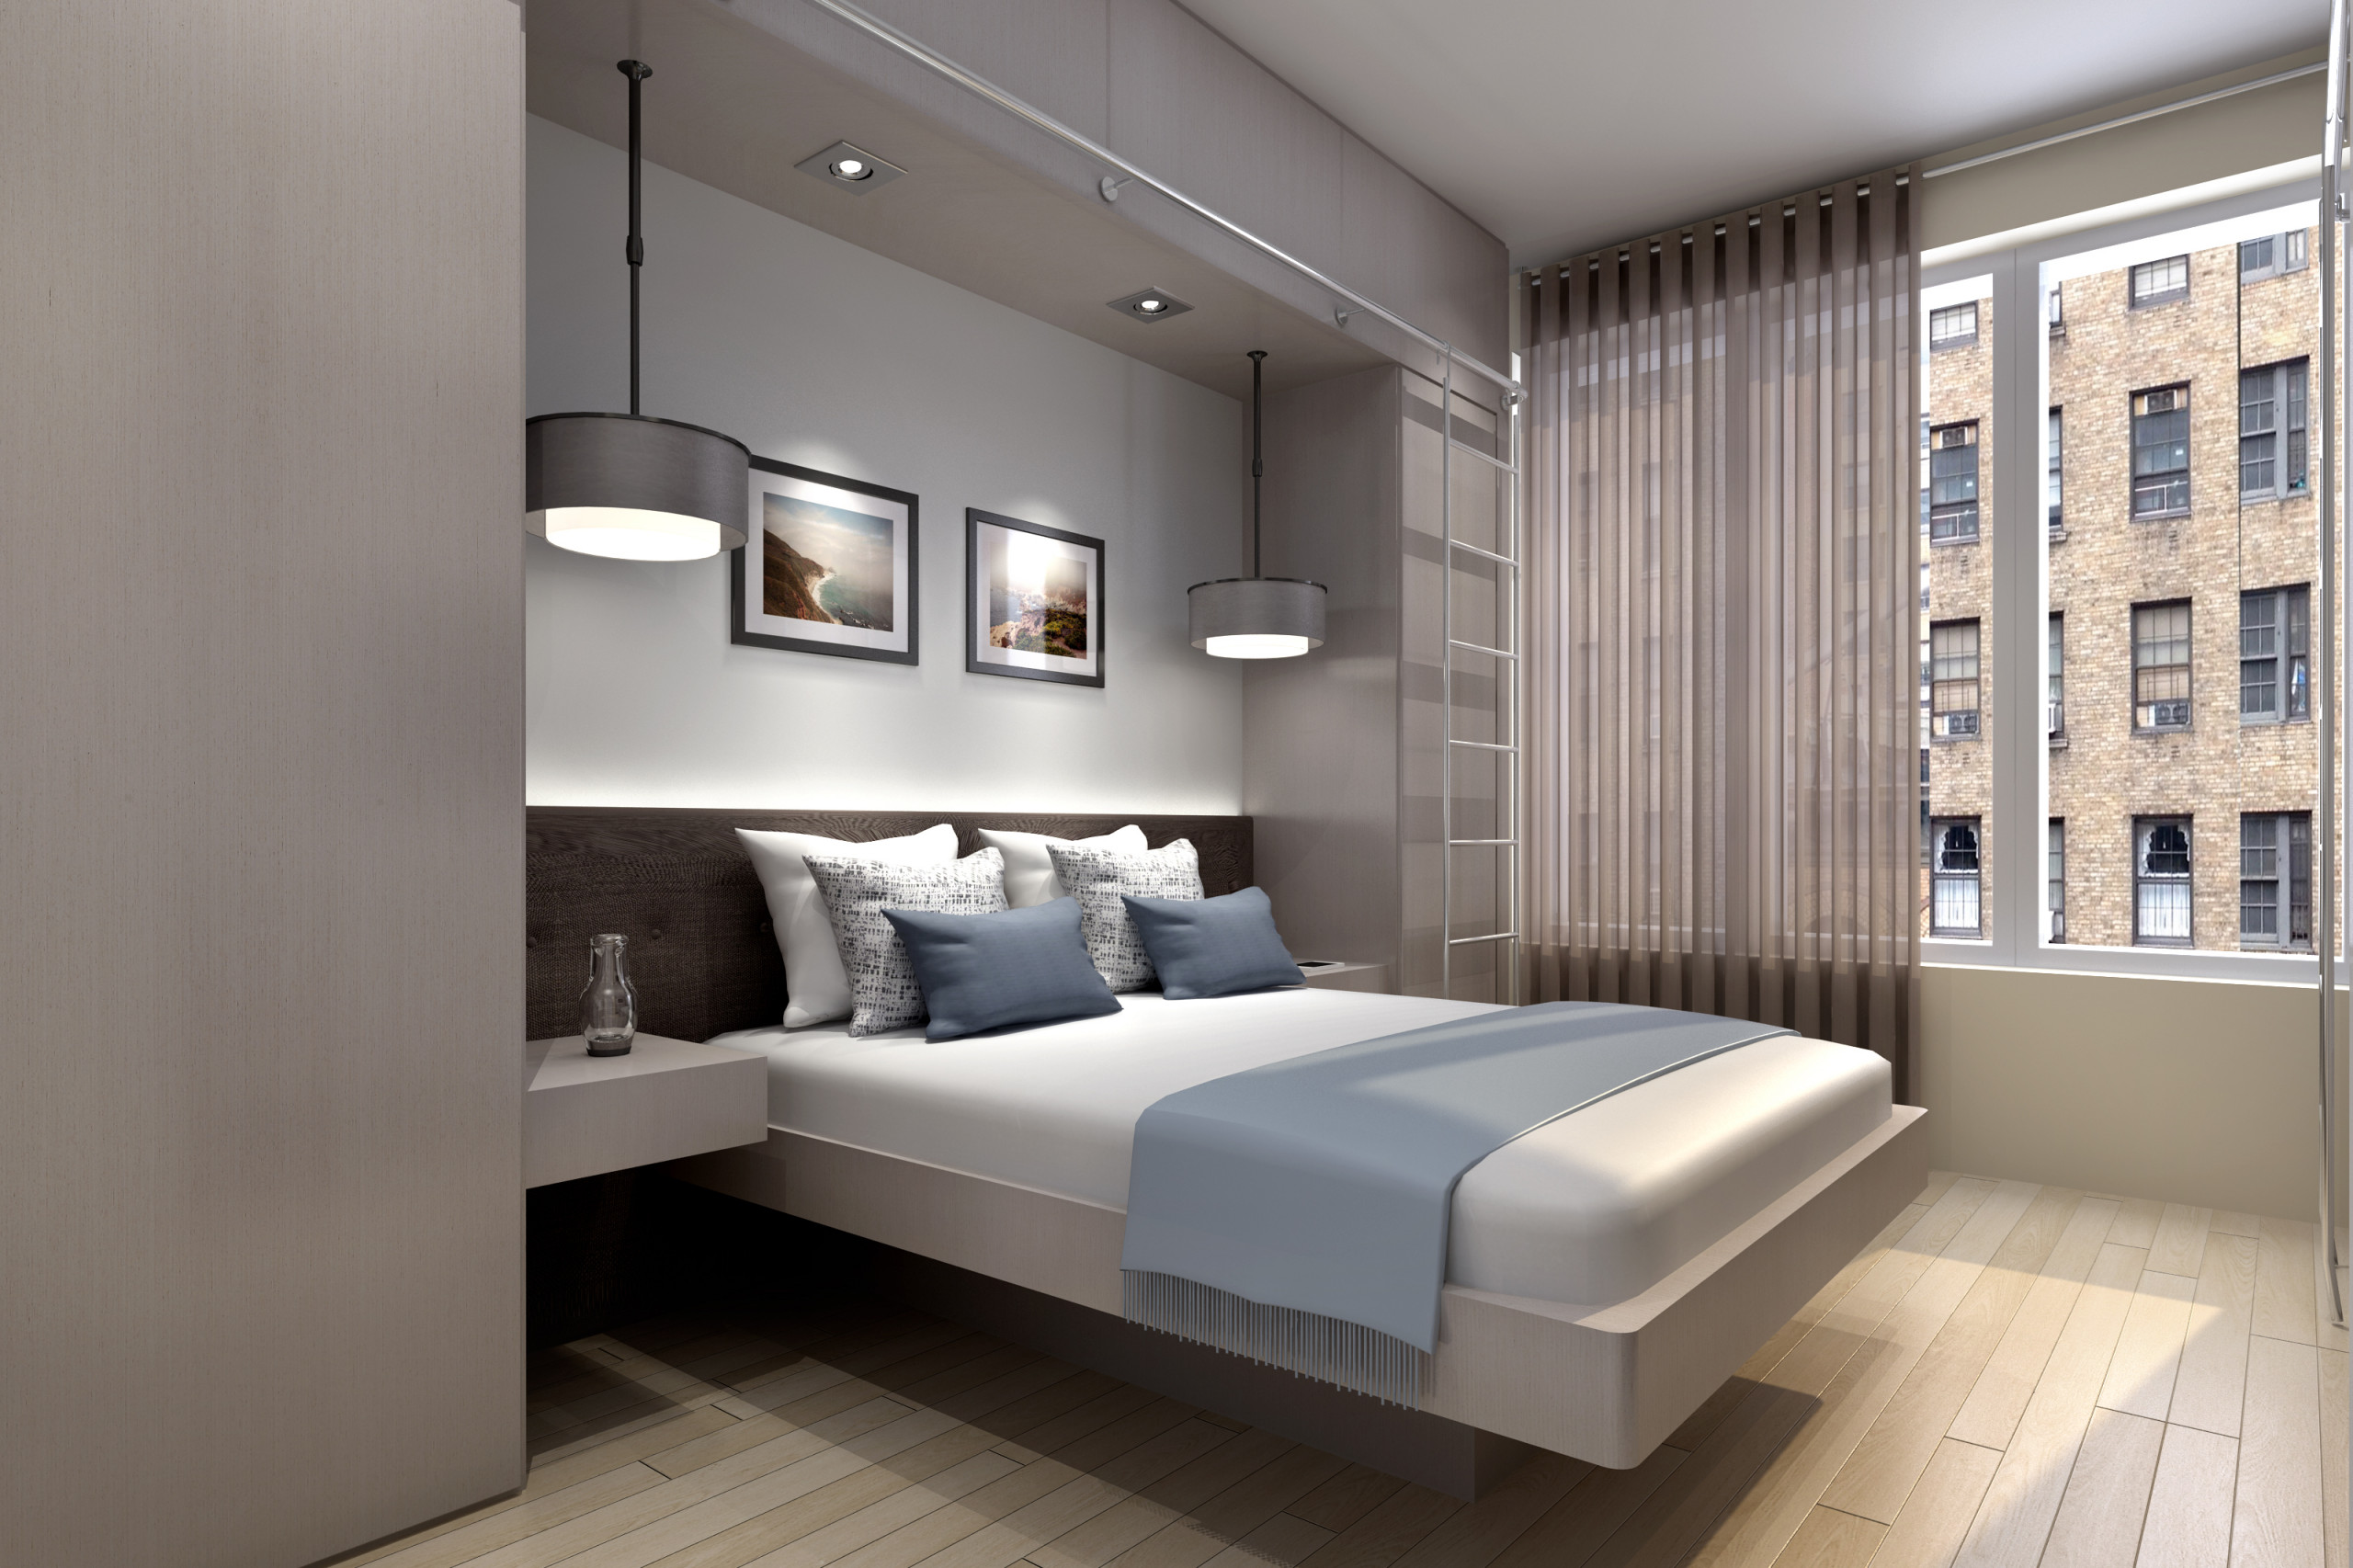 9 Beautiful Modern Bedroom Pictures & Ideas - January, 9  Houzz